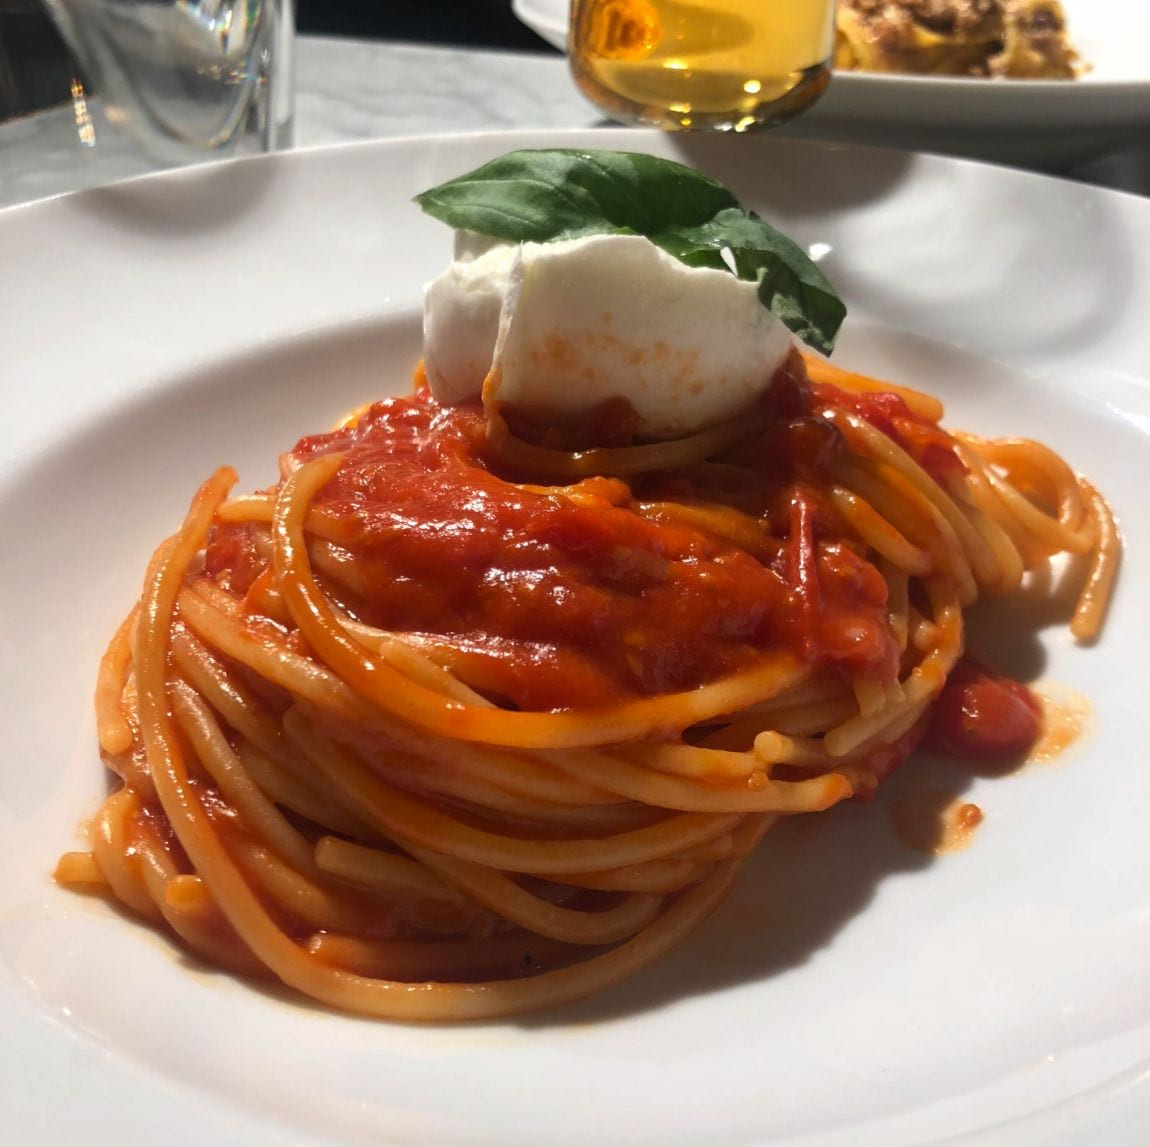 Photo from Eataly by Sophie E.